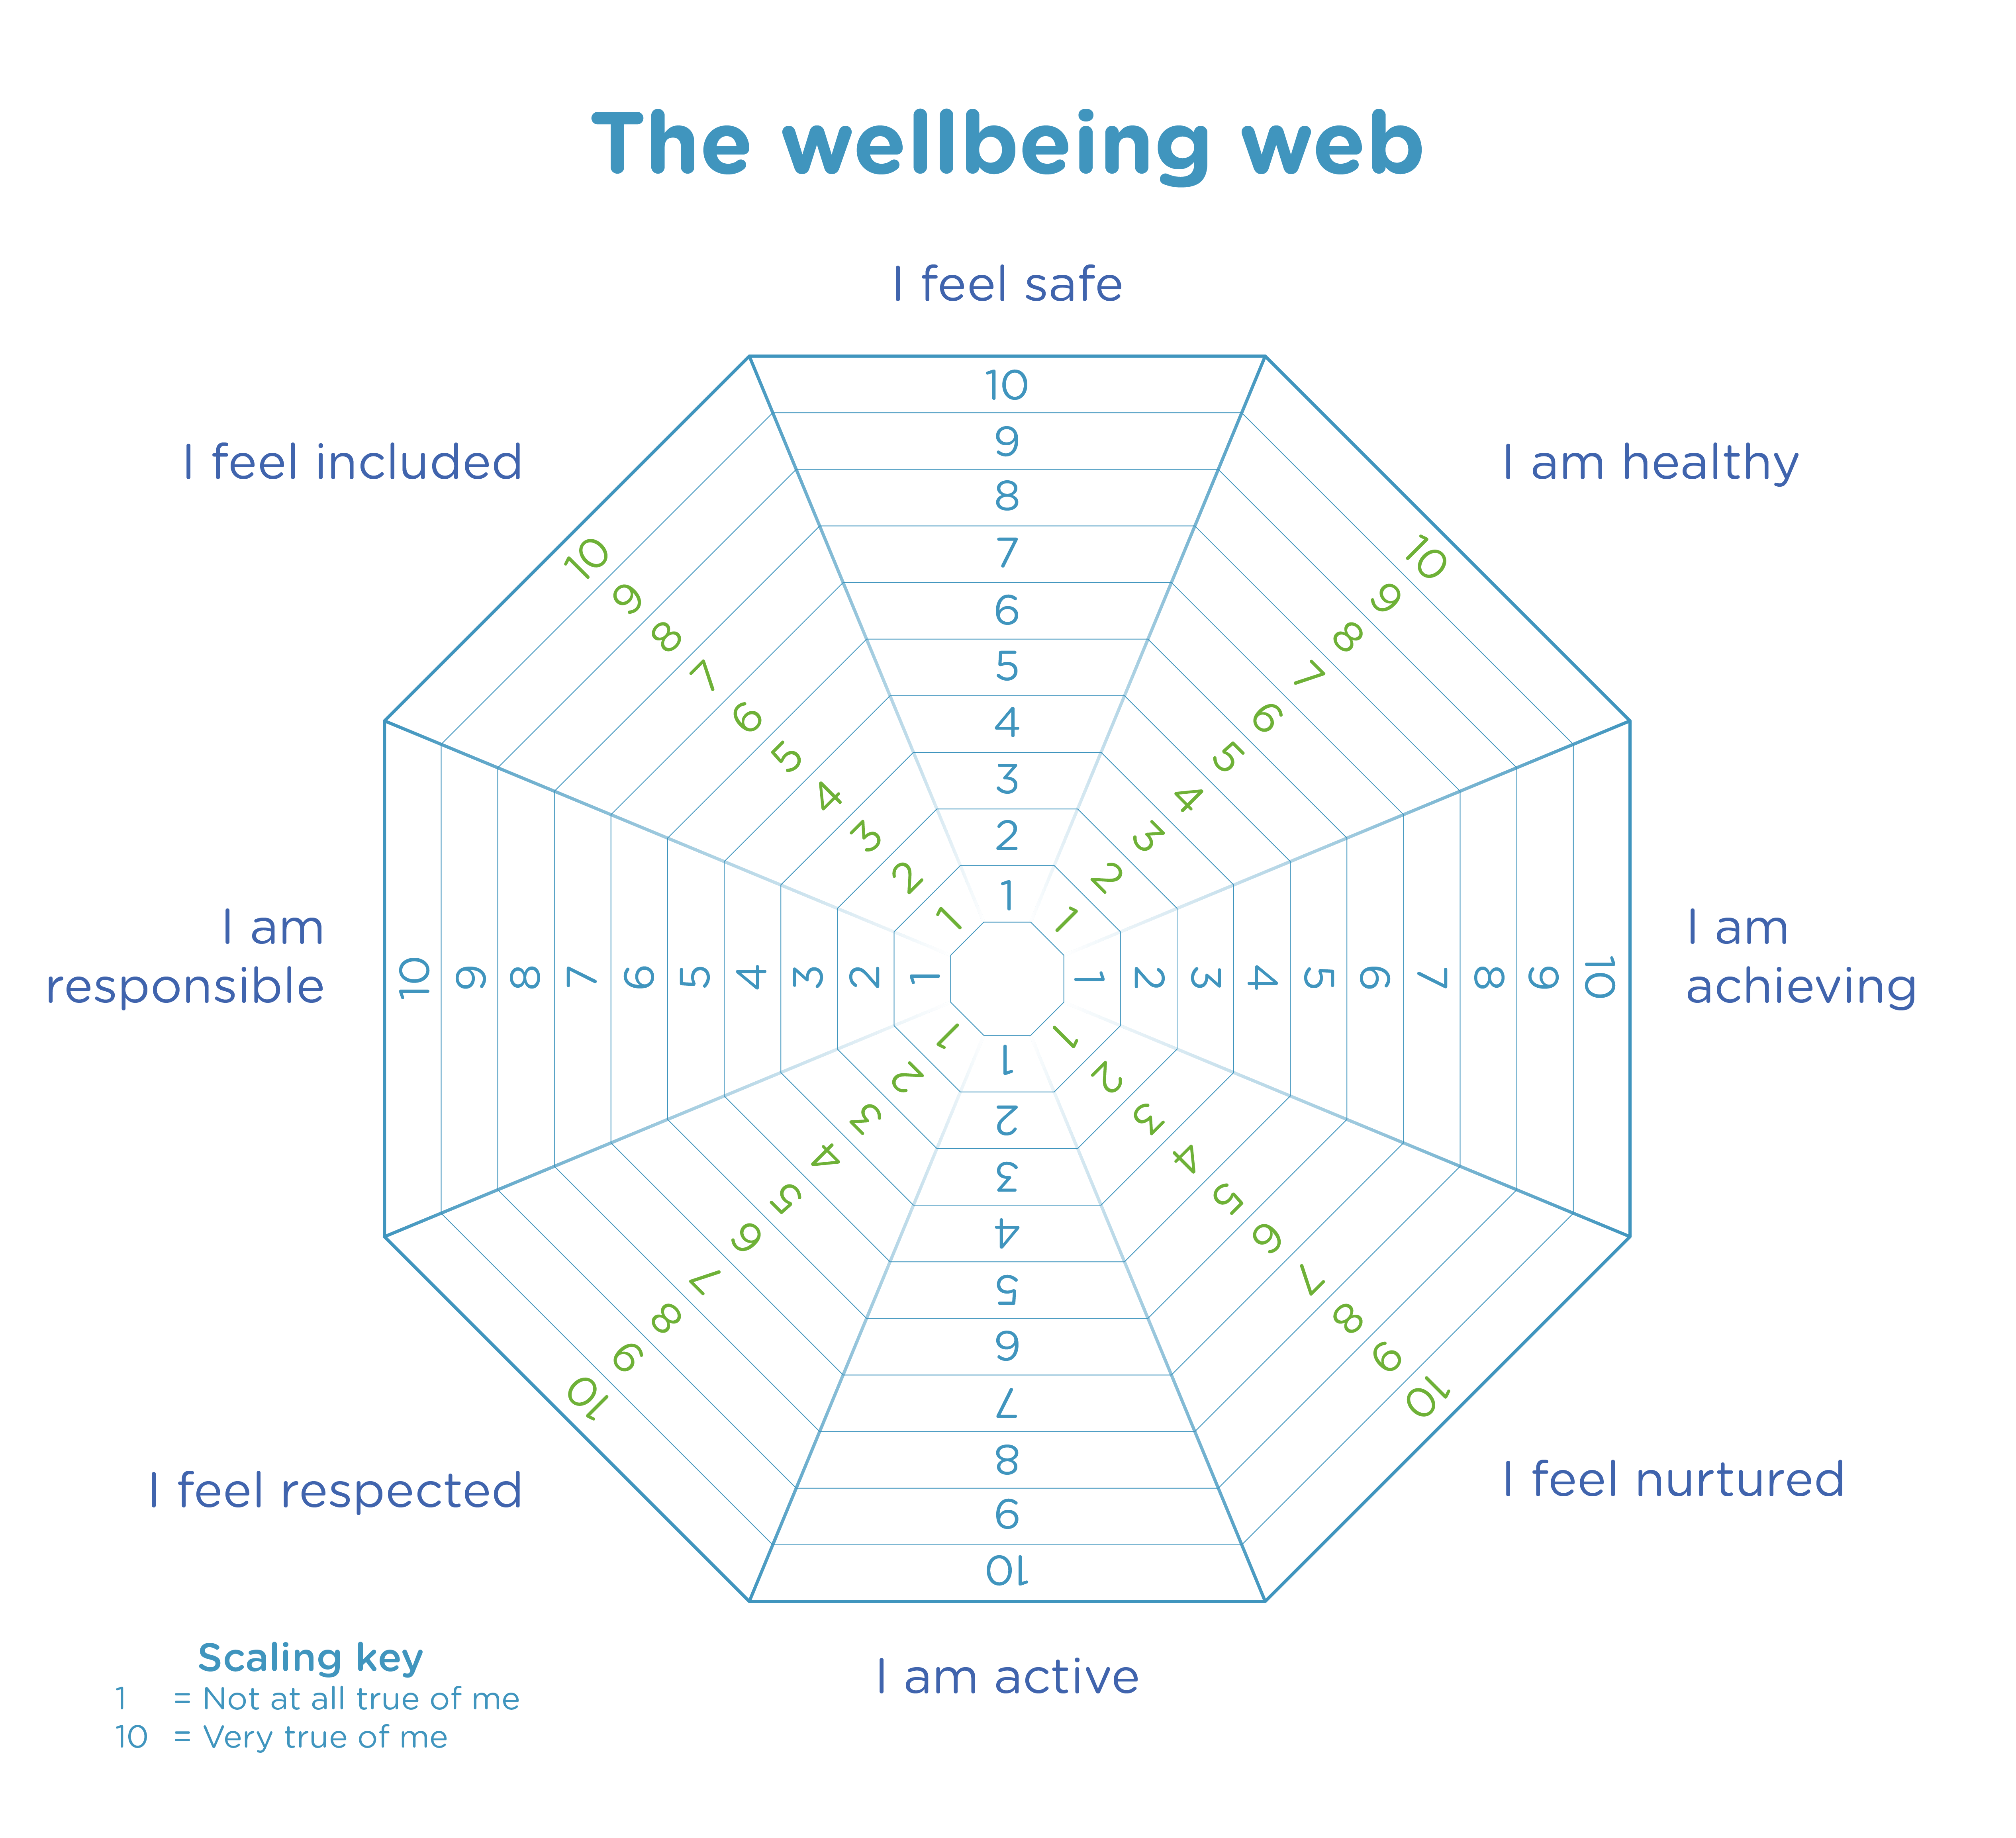 the wellbeing web